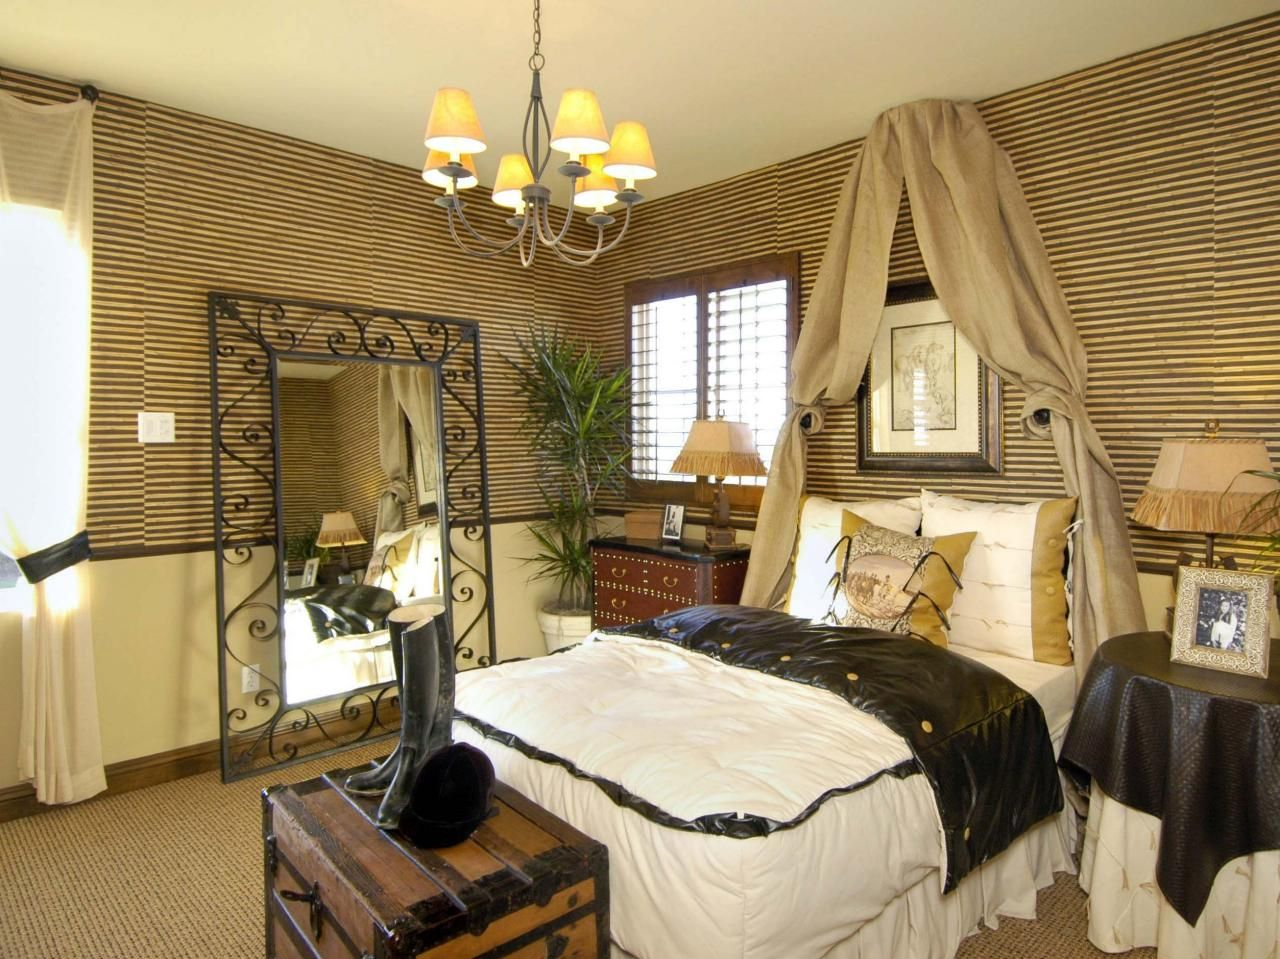 Bamboo Bedroom Decor Style Remodelling Earthy Tones And Textures Envelop This Room In A Safariinspired .